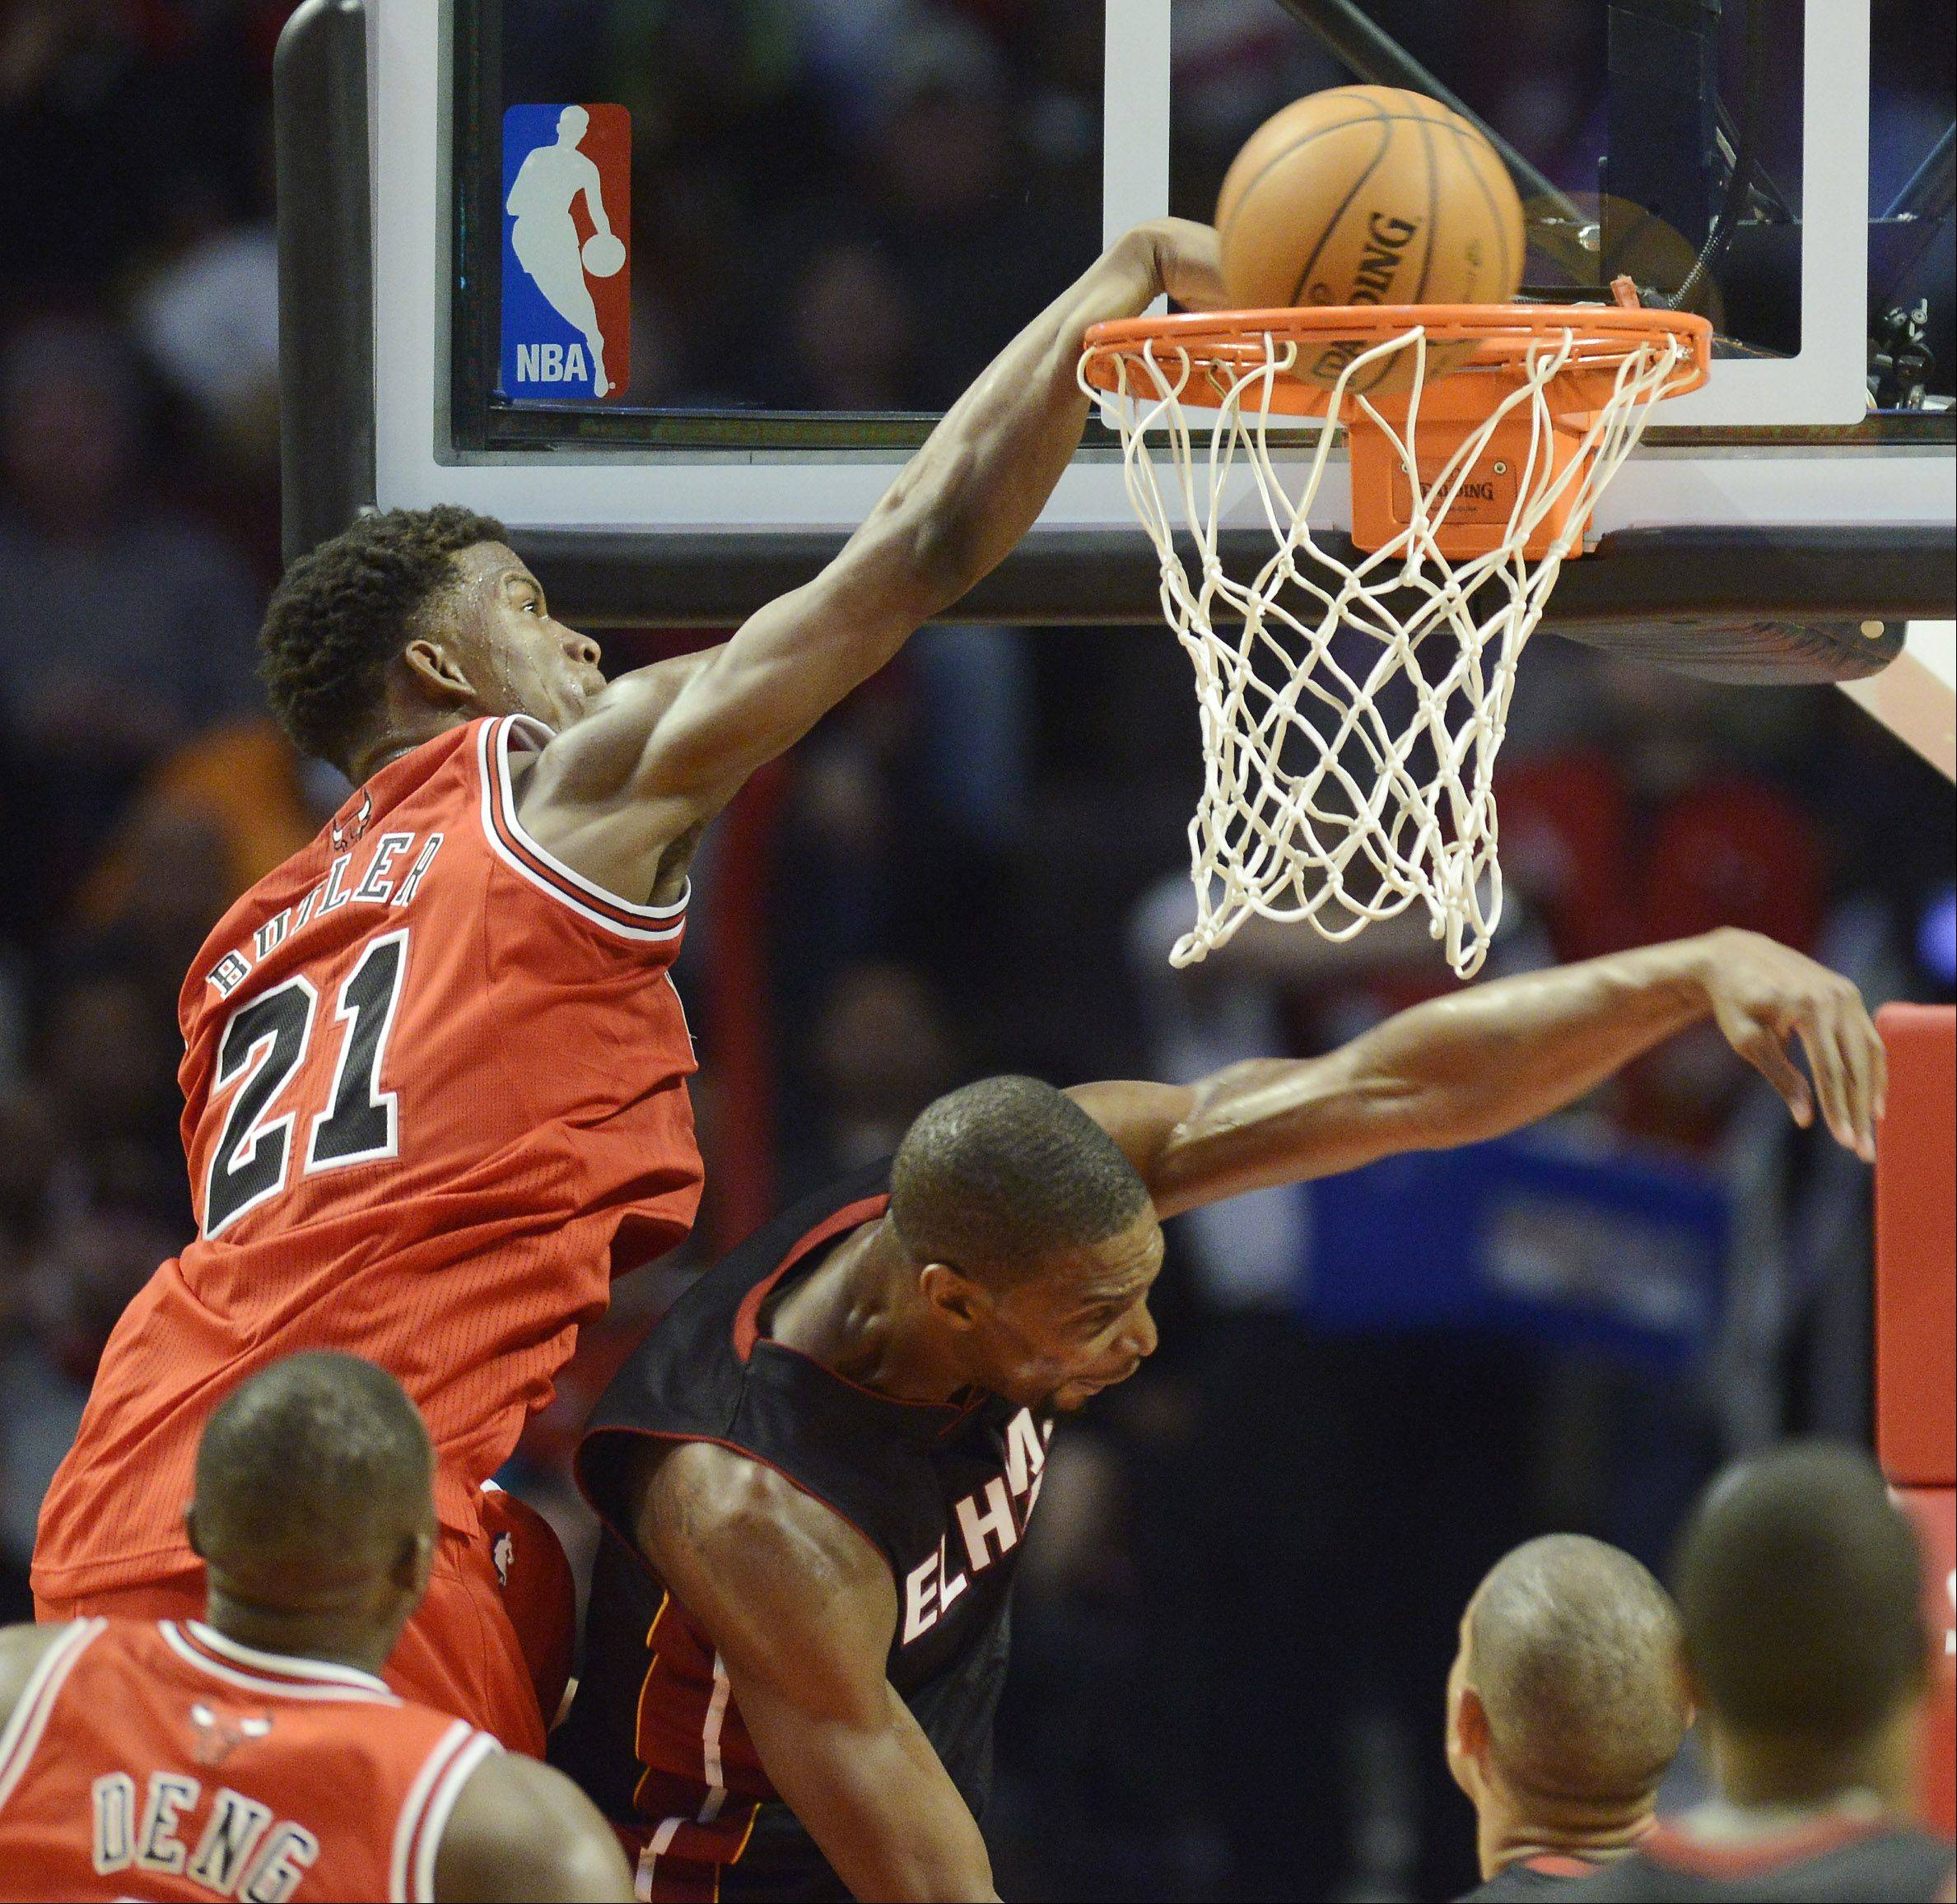 Jimmy Butler of the Bulls dunks over Chris Bosh of the Heat with 2:25 left in the third quarter Wednesday.